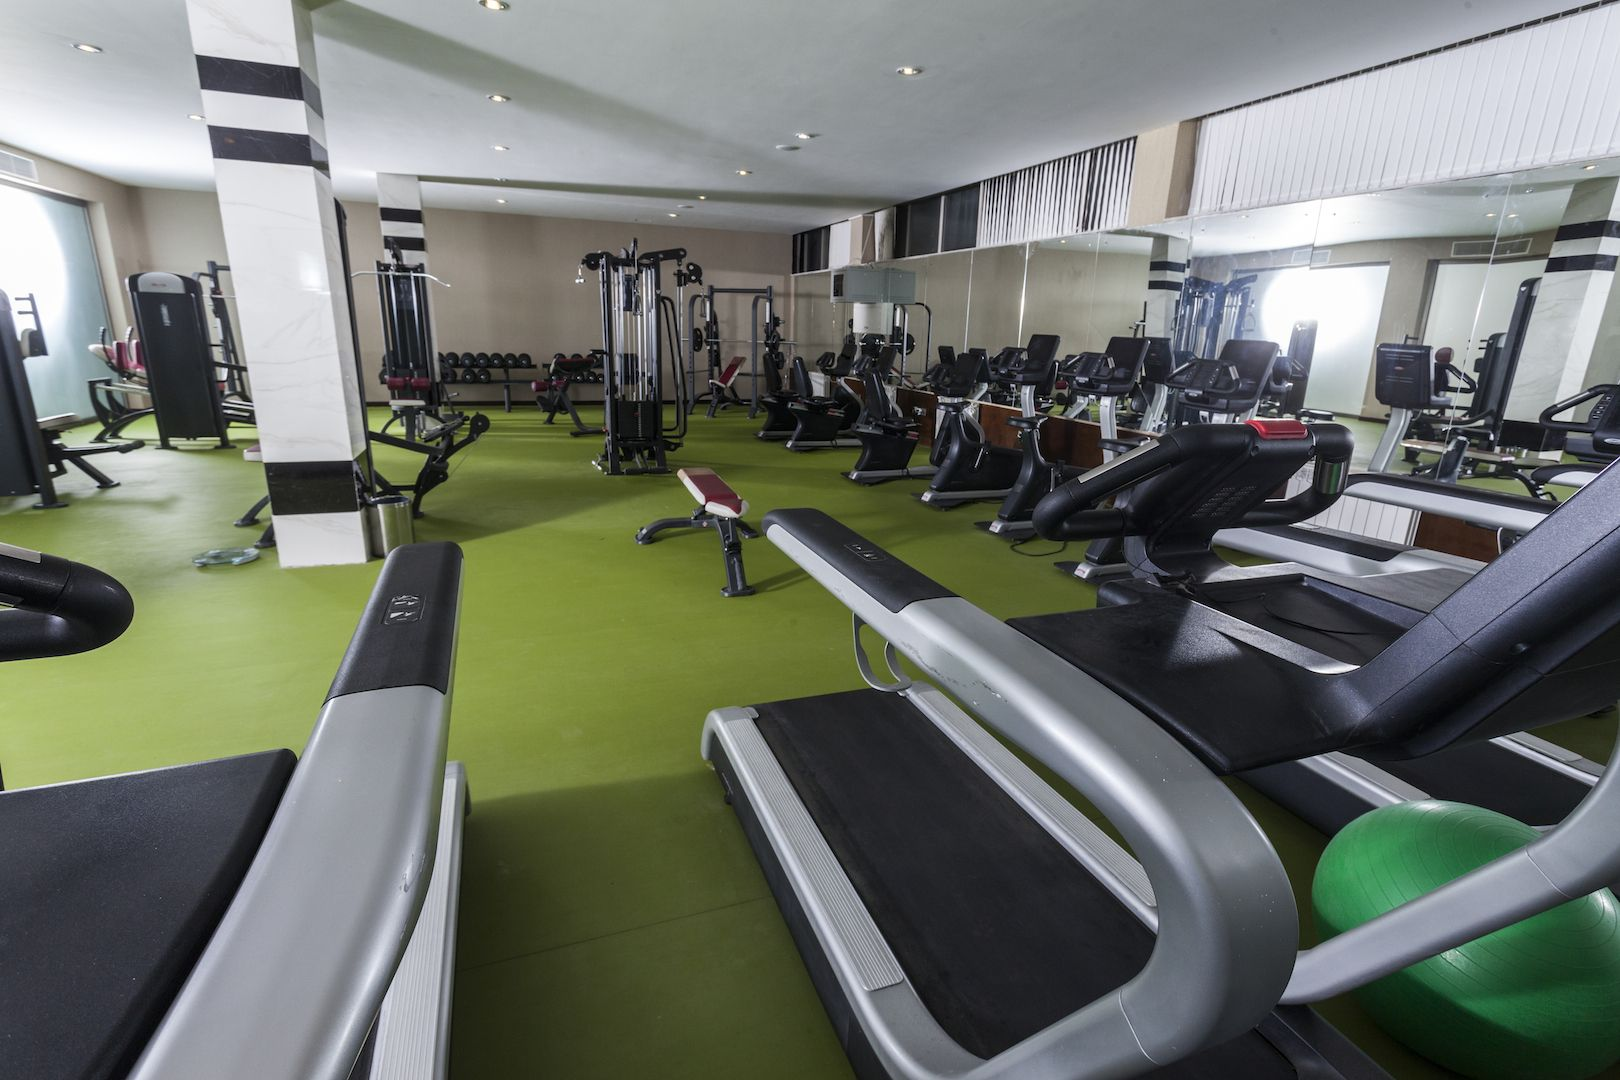 Naftalan Hotel By Rixos Azerbaijan Fitness Center Hotel Luxury Destinations Fitness Center